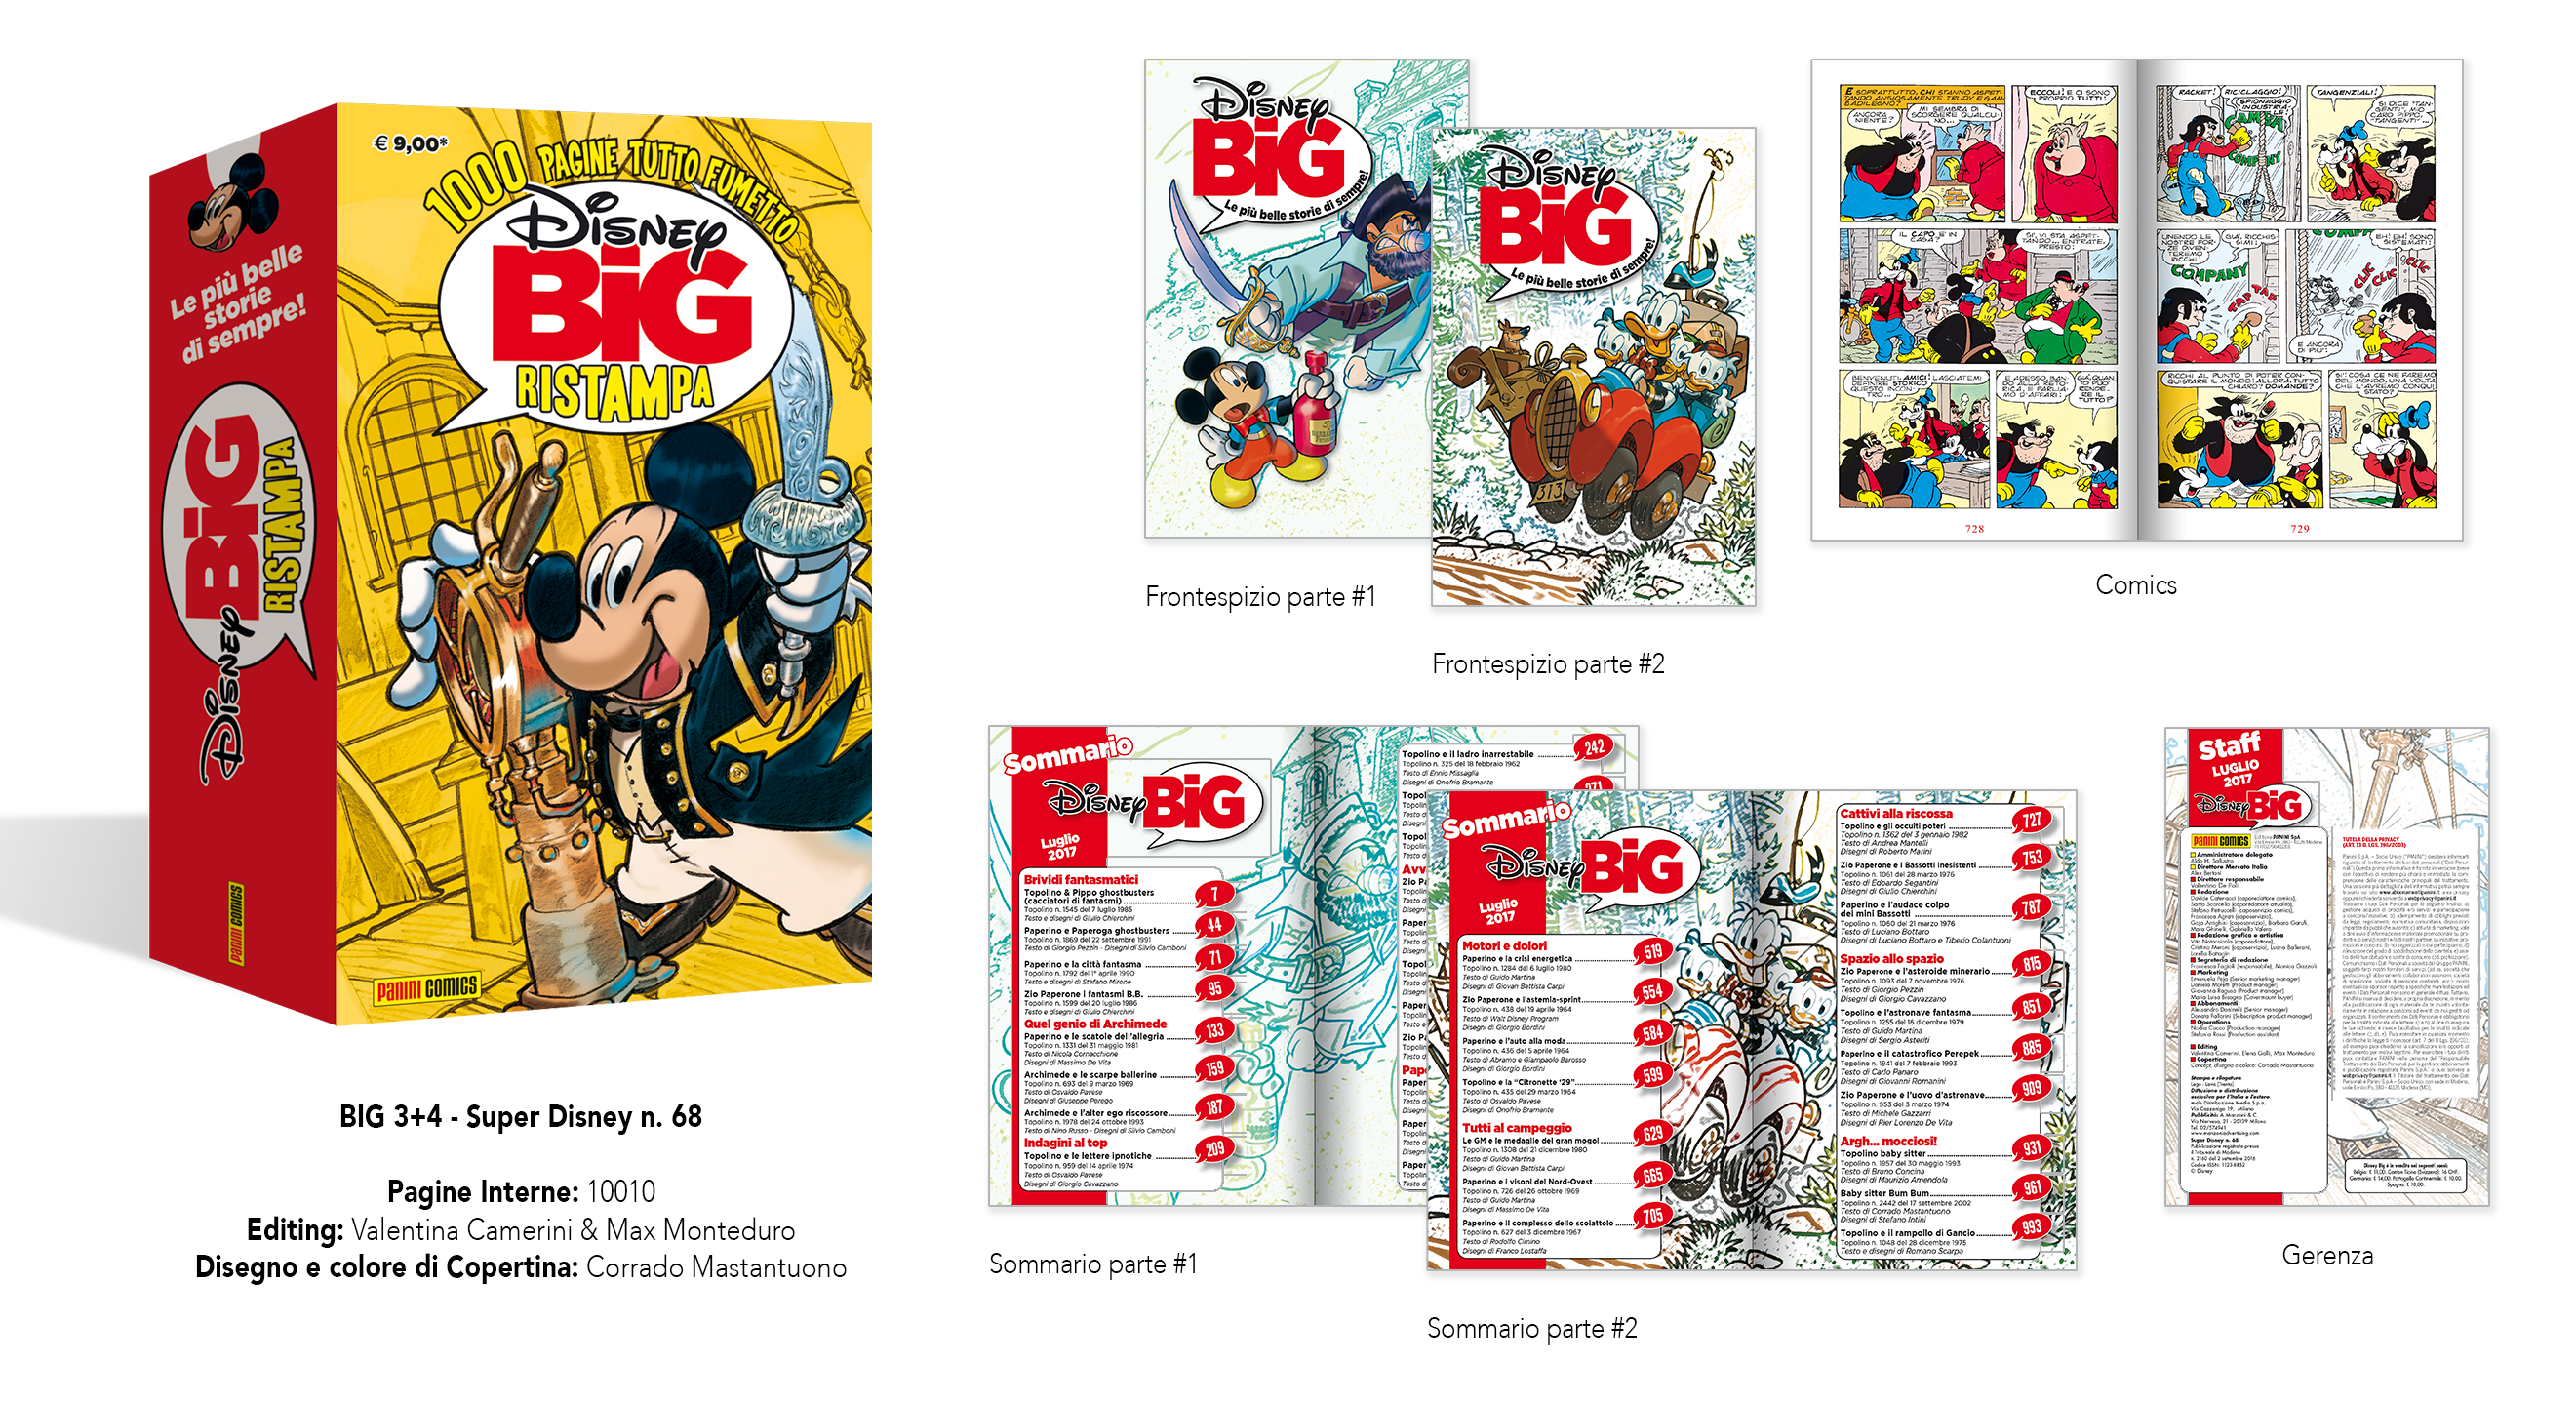 BIG 3+4 - Super Disney 68